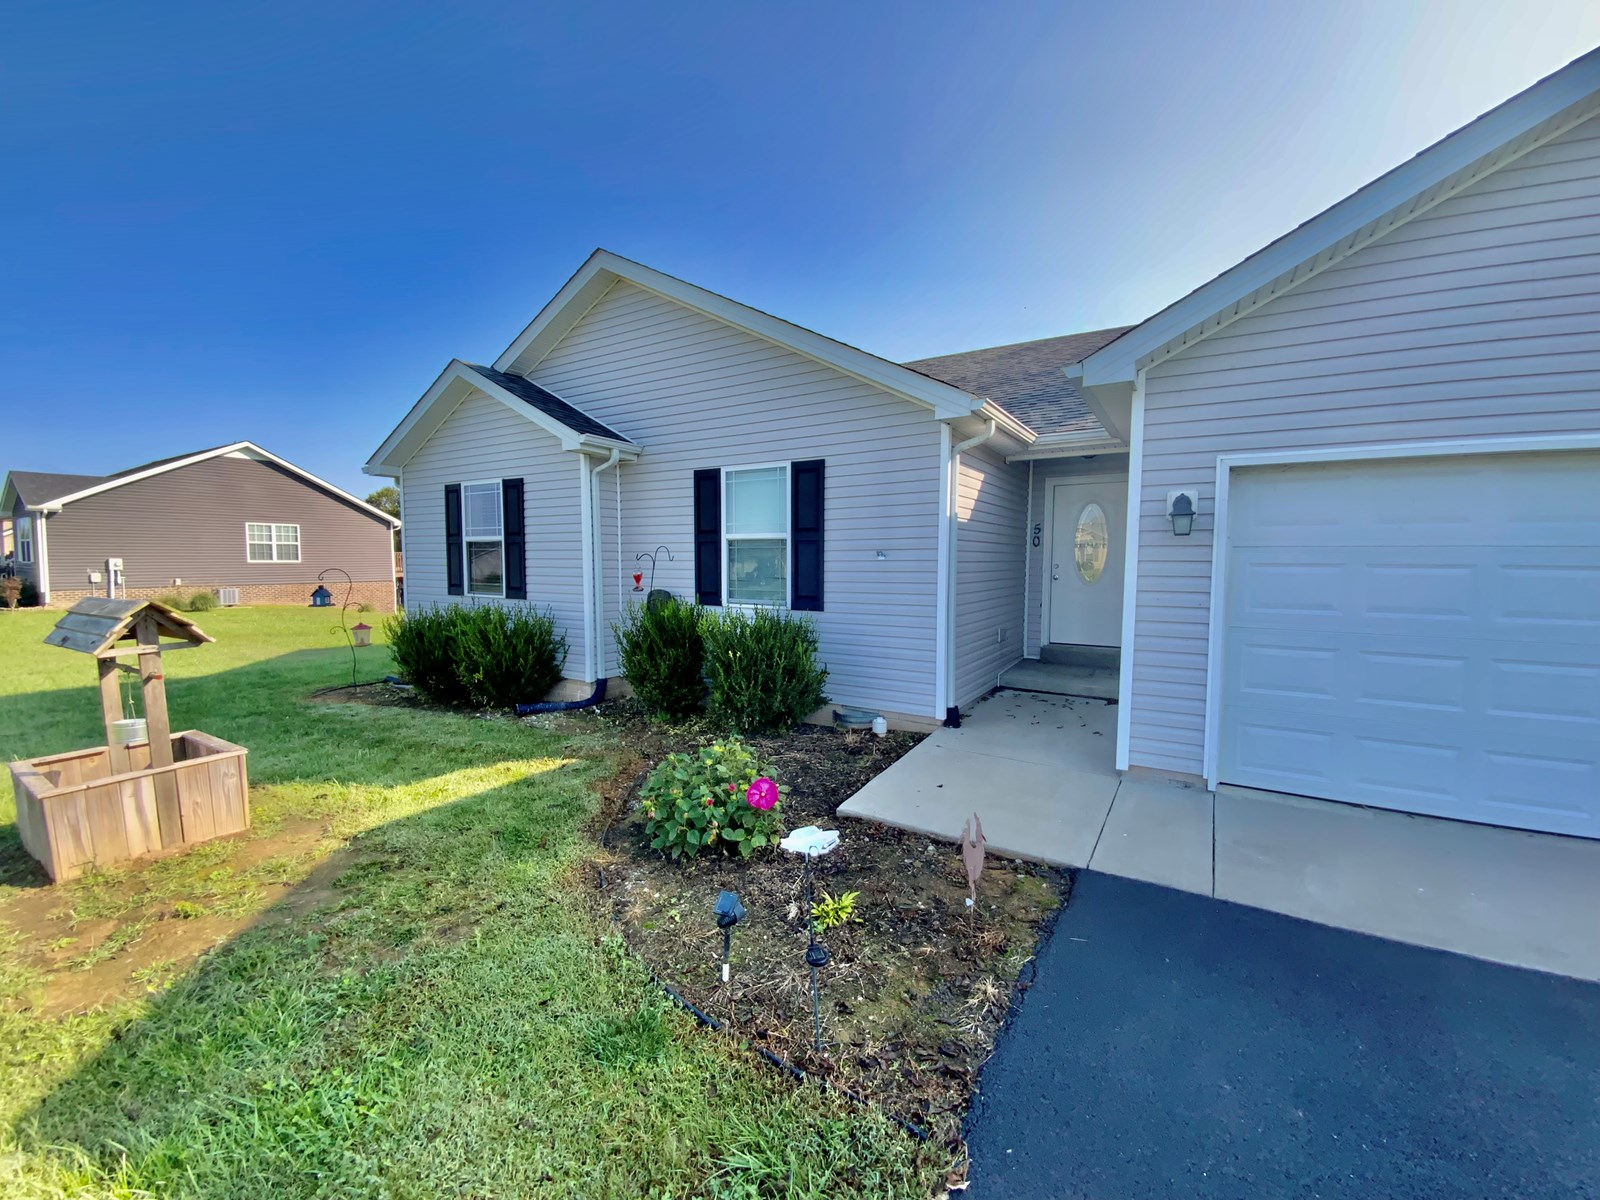 Country Living 4 Bedroom Home Glasgow KY